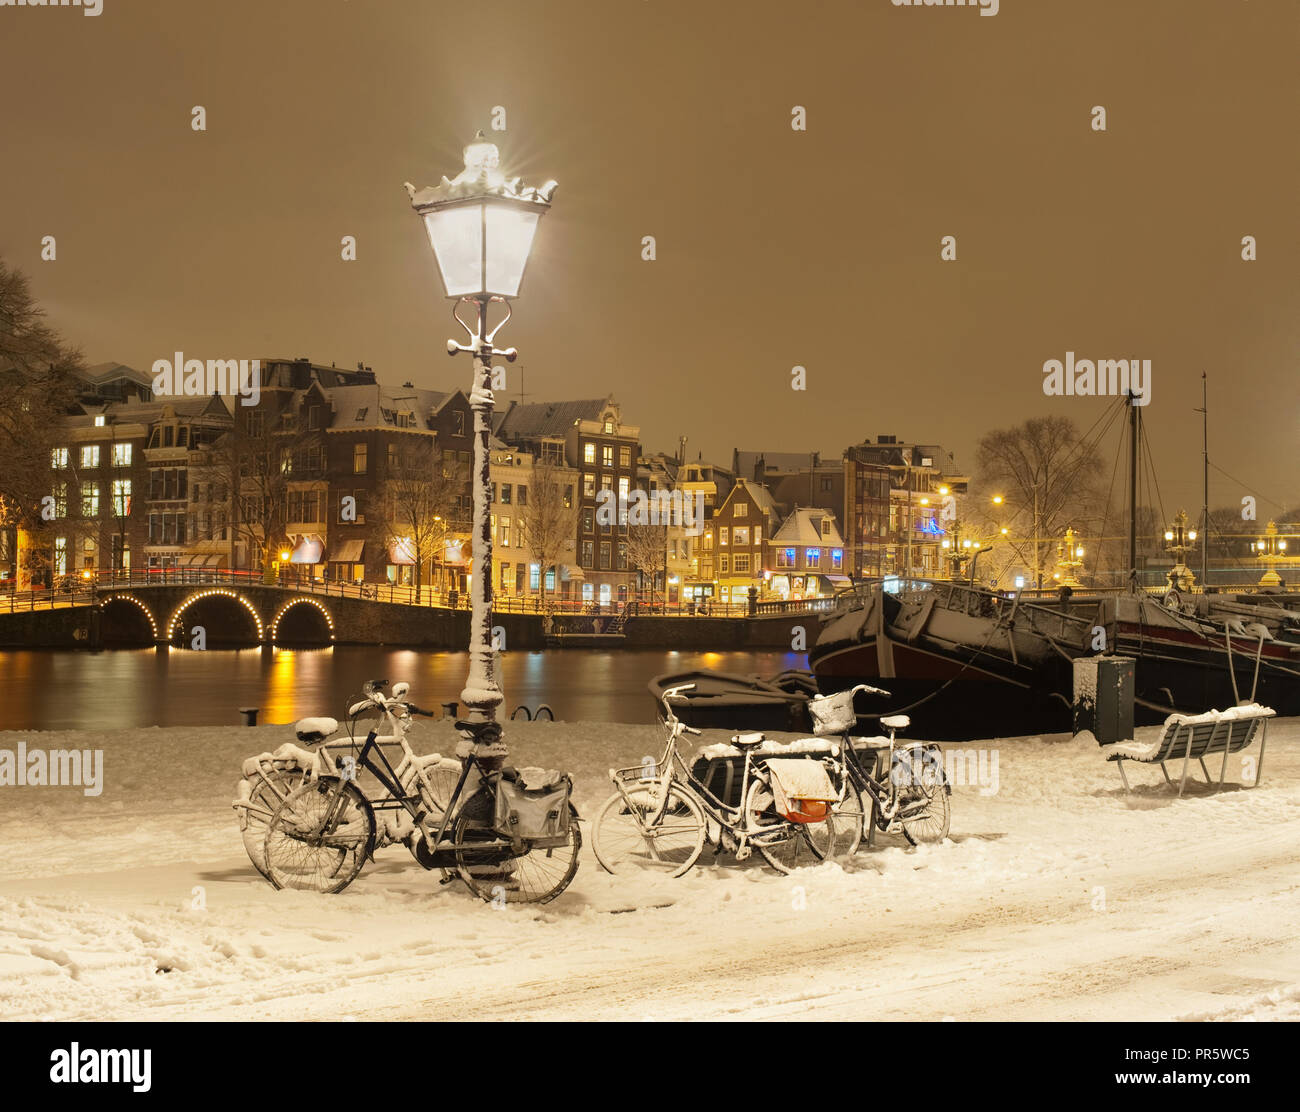 Amsterdam with snow and parked bicycles. A beautiful, typical Dutch  winter scene. Stock Photo